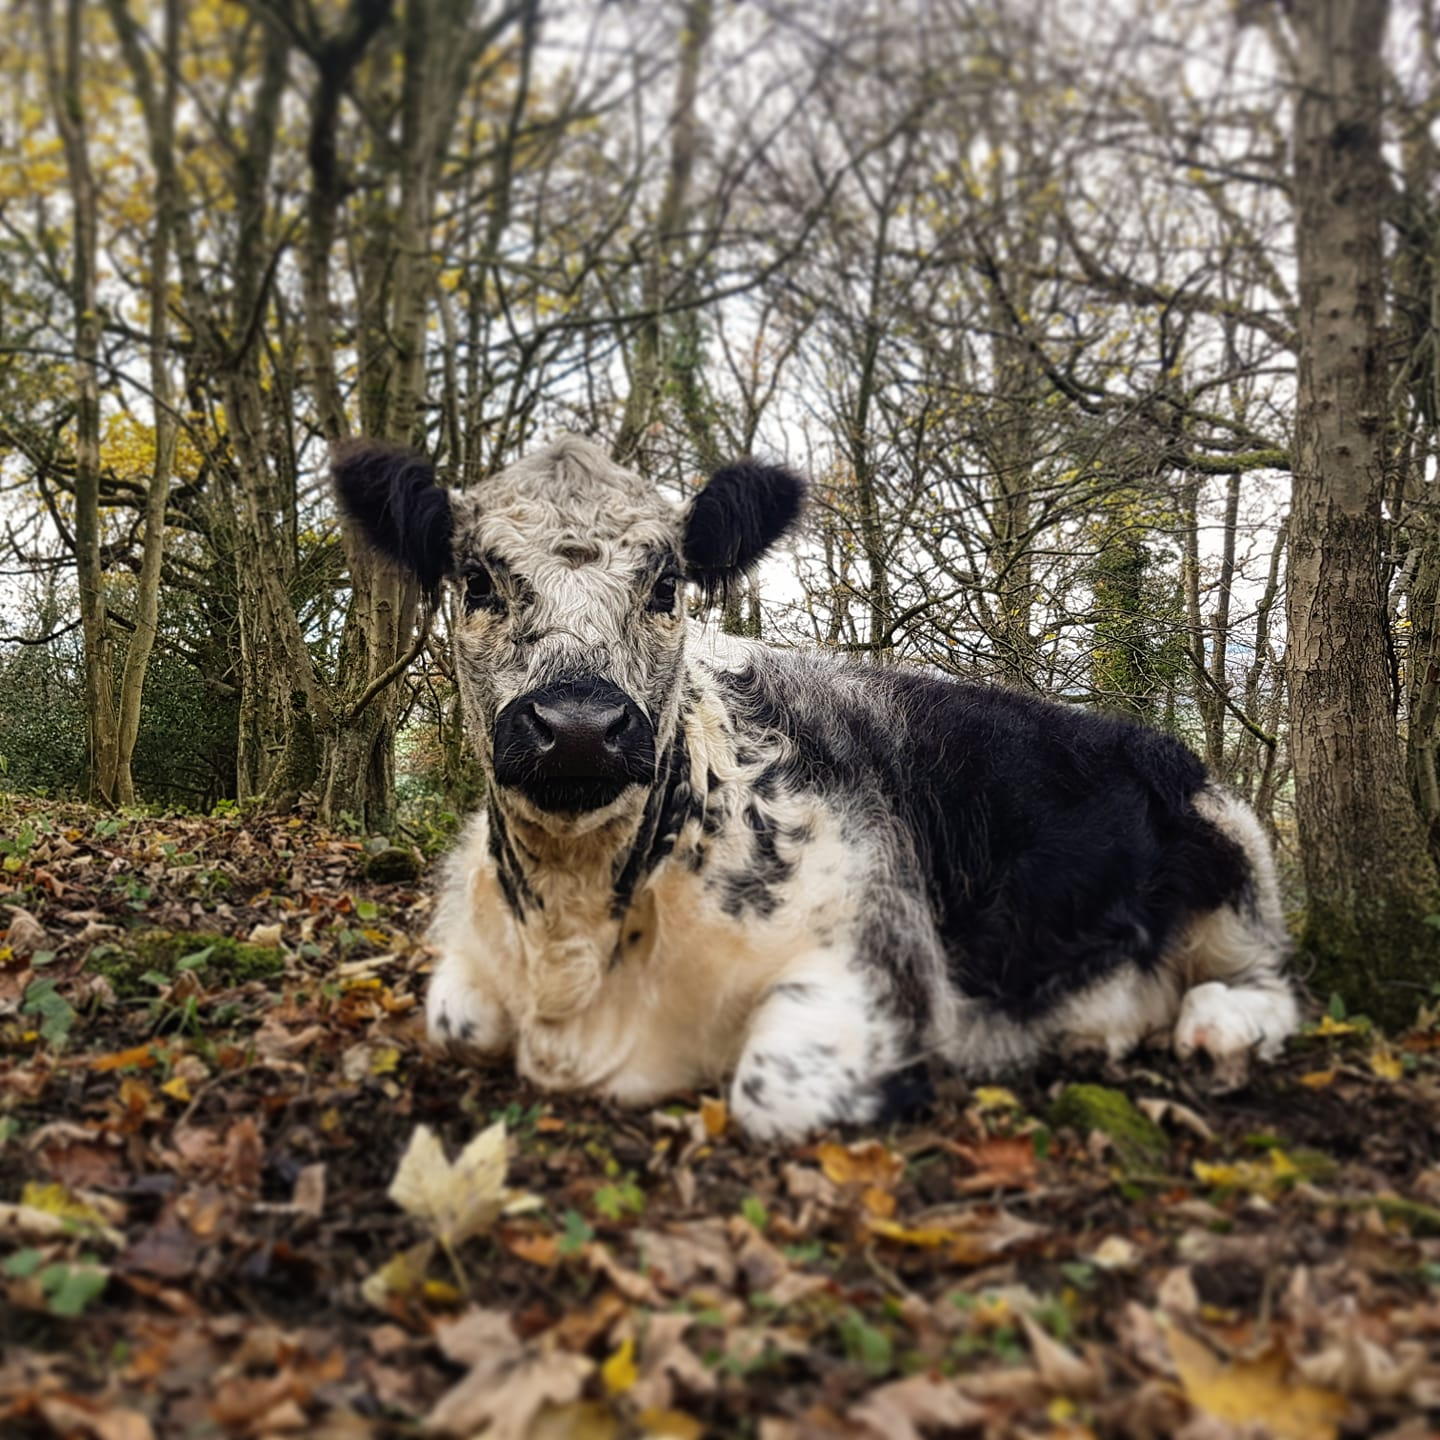 I buy beef from The Horned Beef Company who have hardy breeds grazing and browsing woodland and scrubland and are tough enough to be outdoors all year. Their positive impact on the landscape they graze is huge. Pic from THBC website.